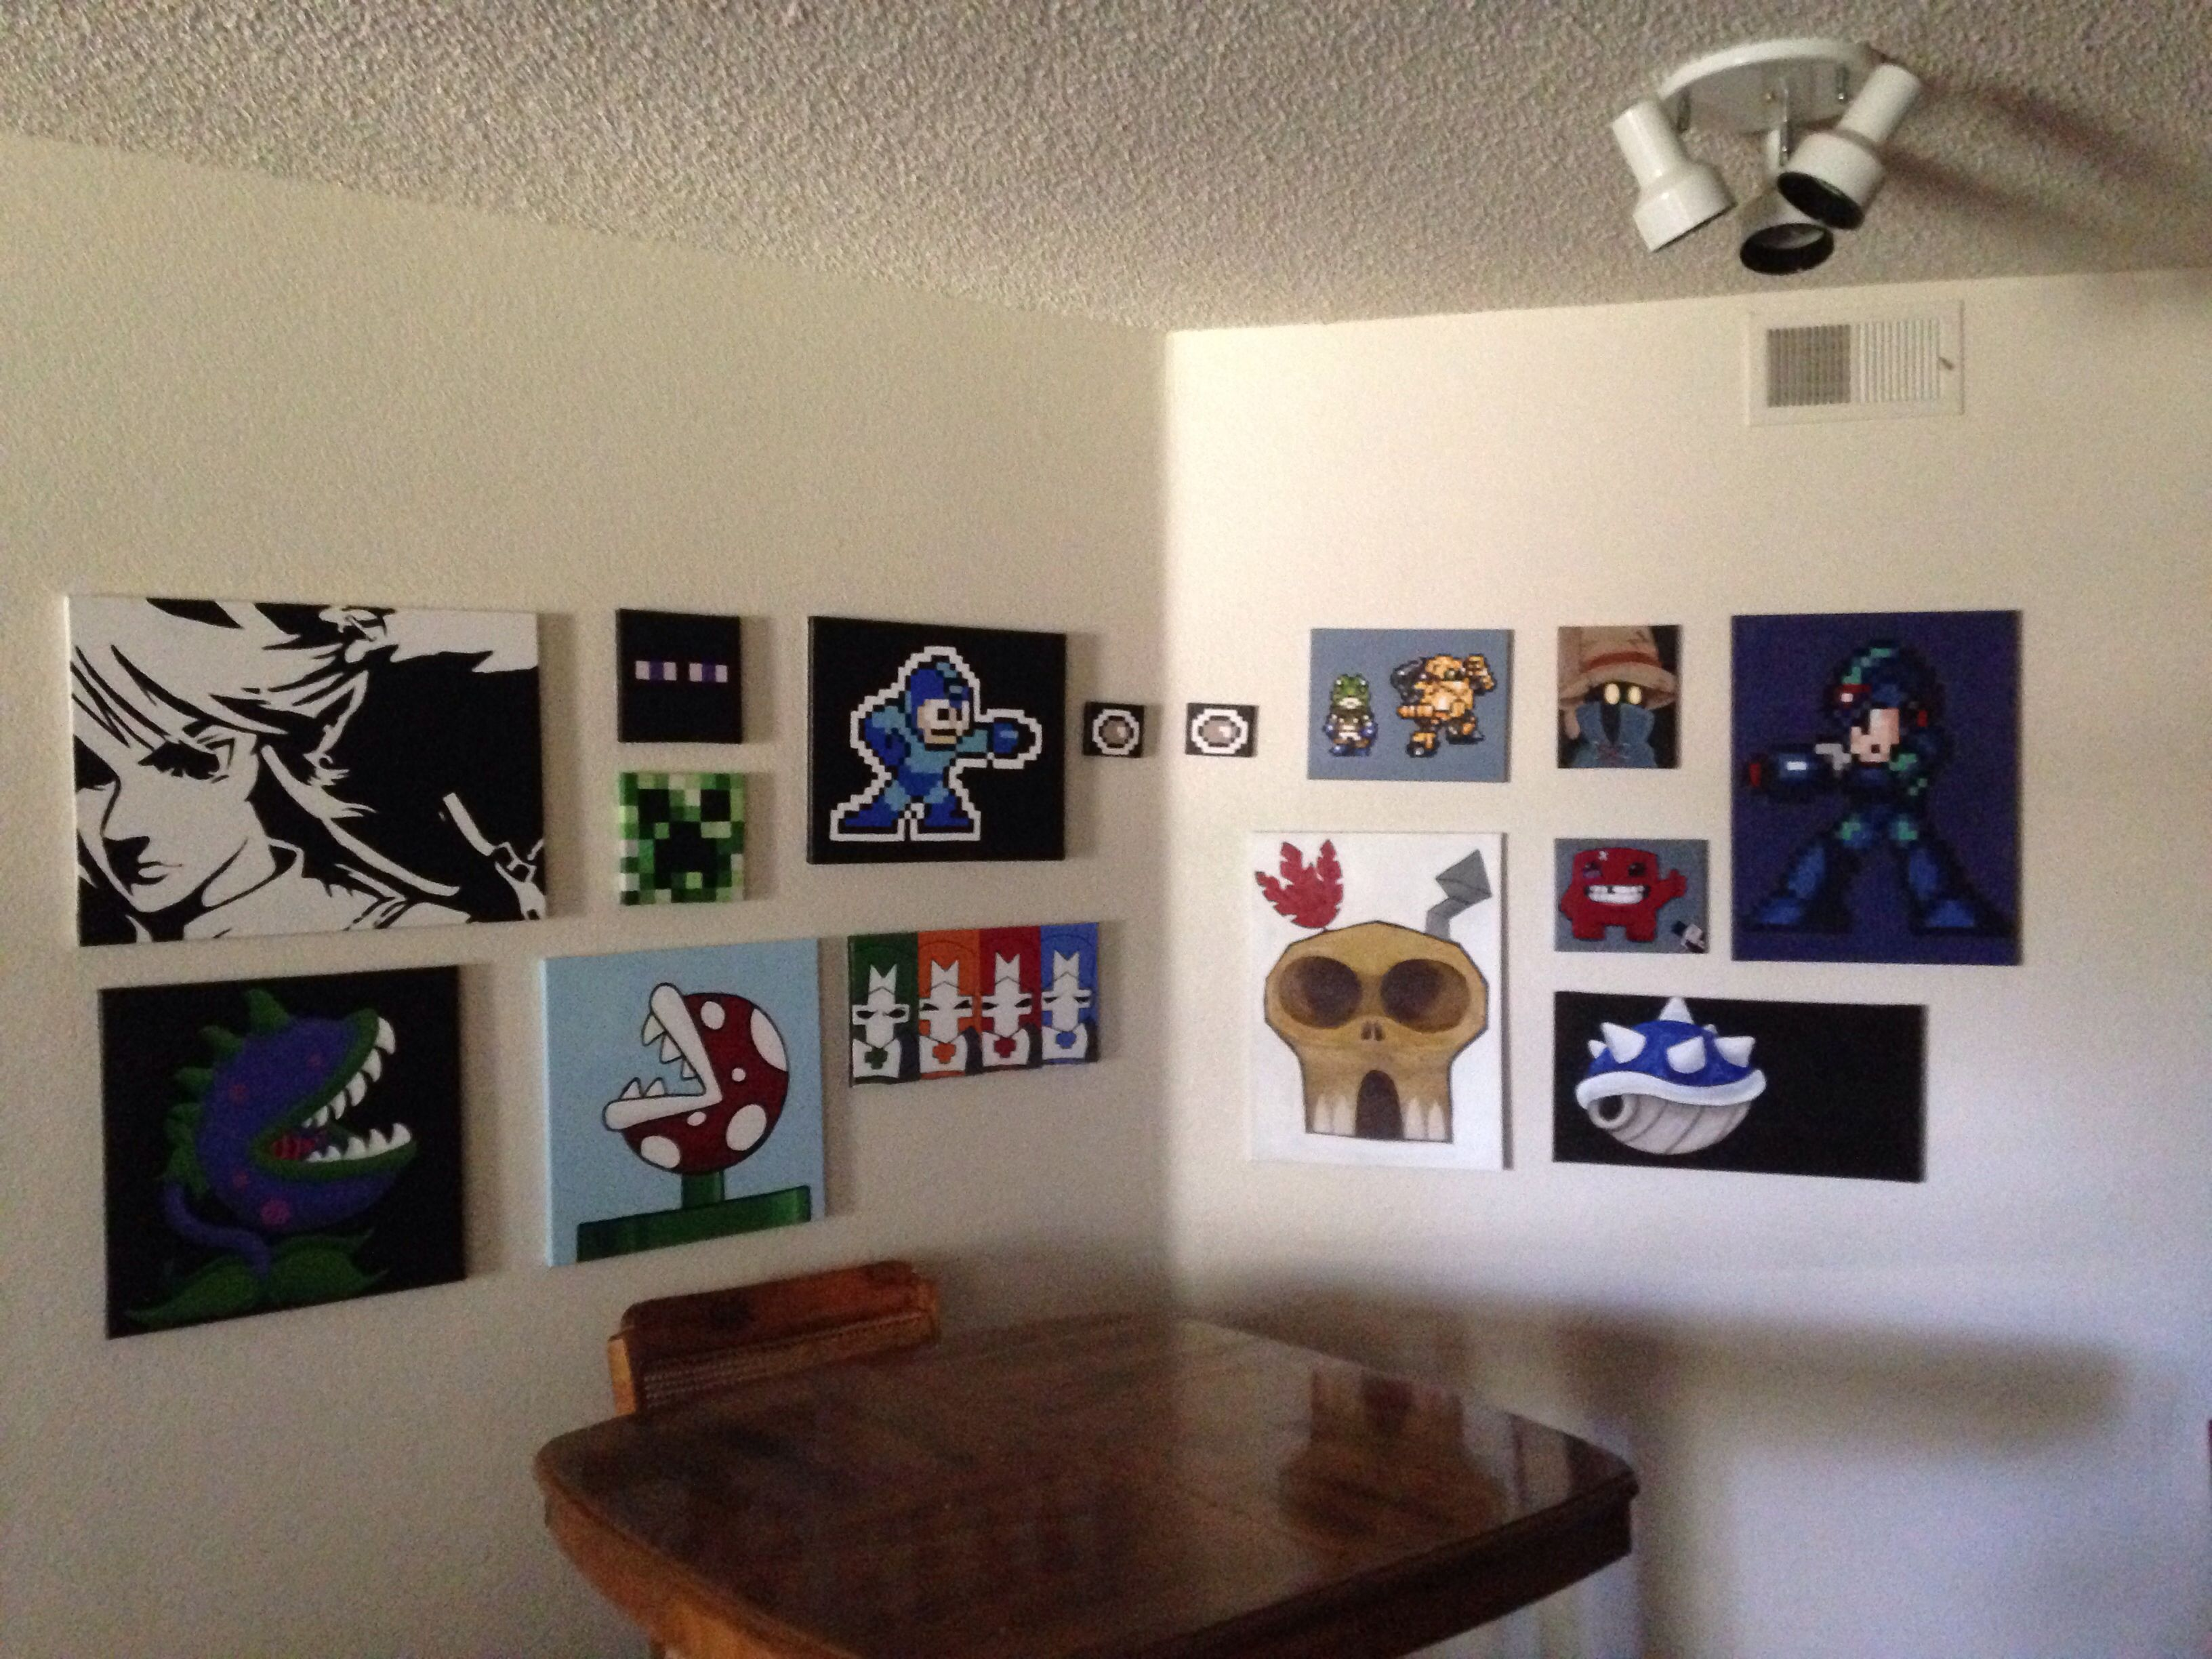 Added to the video game wall Legend of Zelda Mario Plants vs